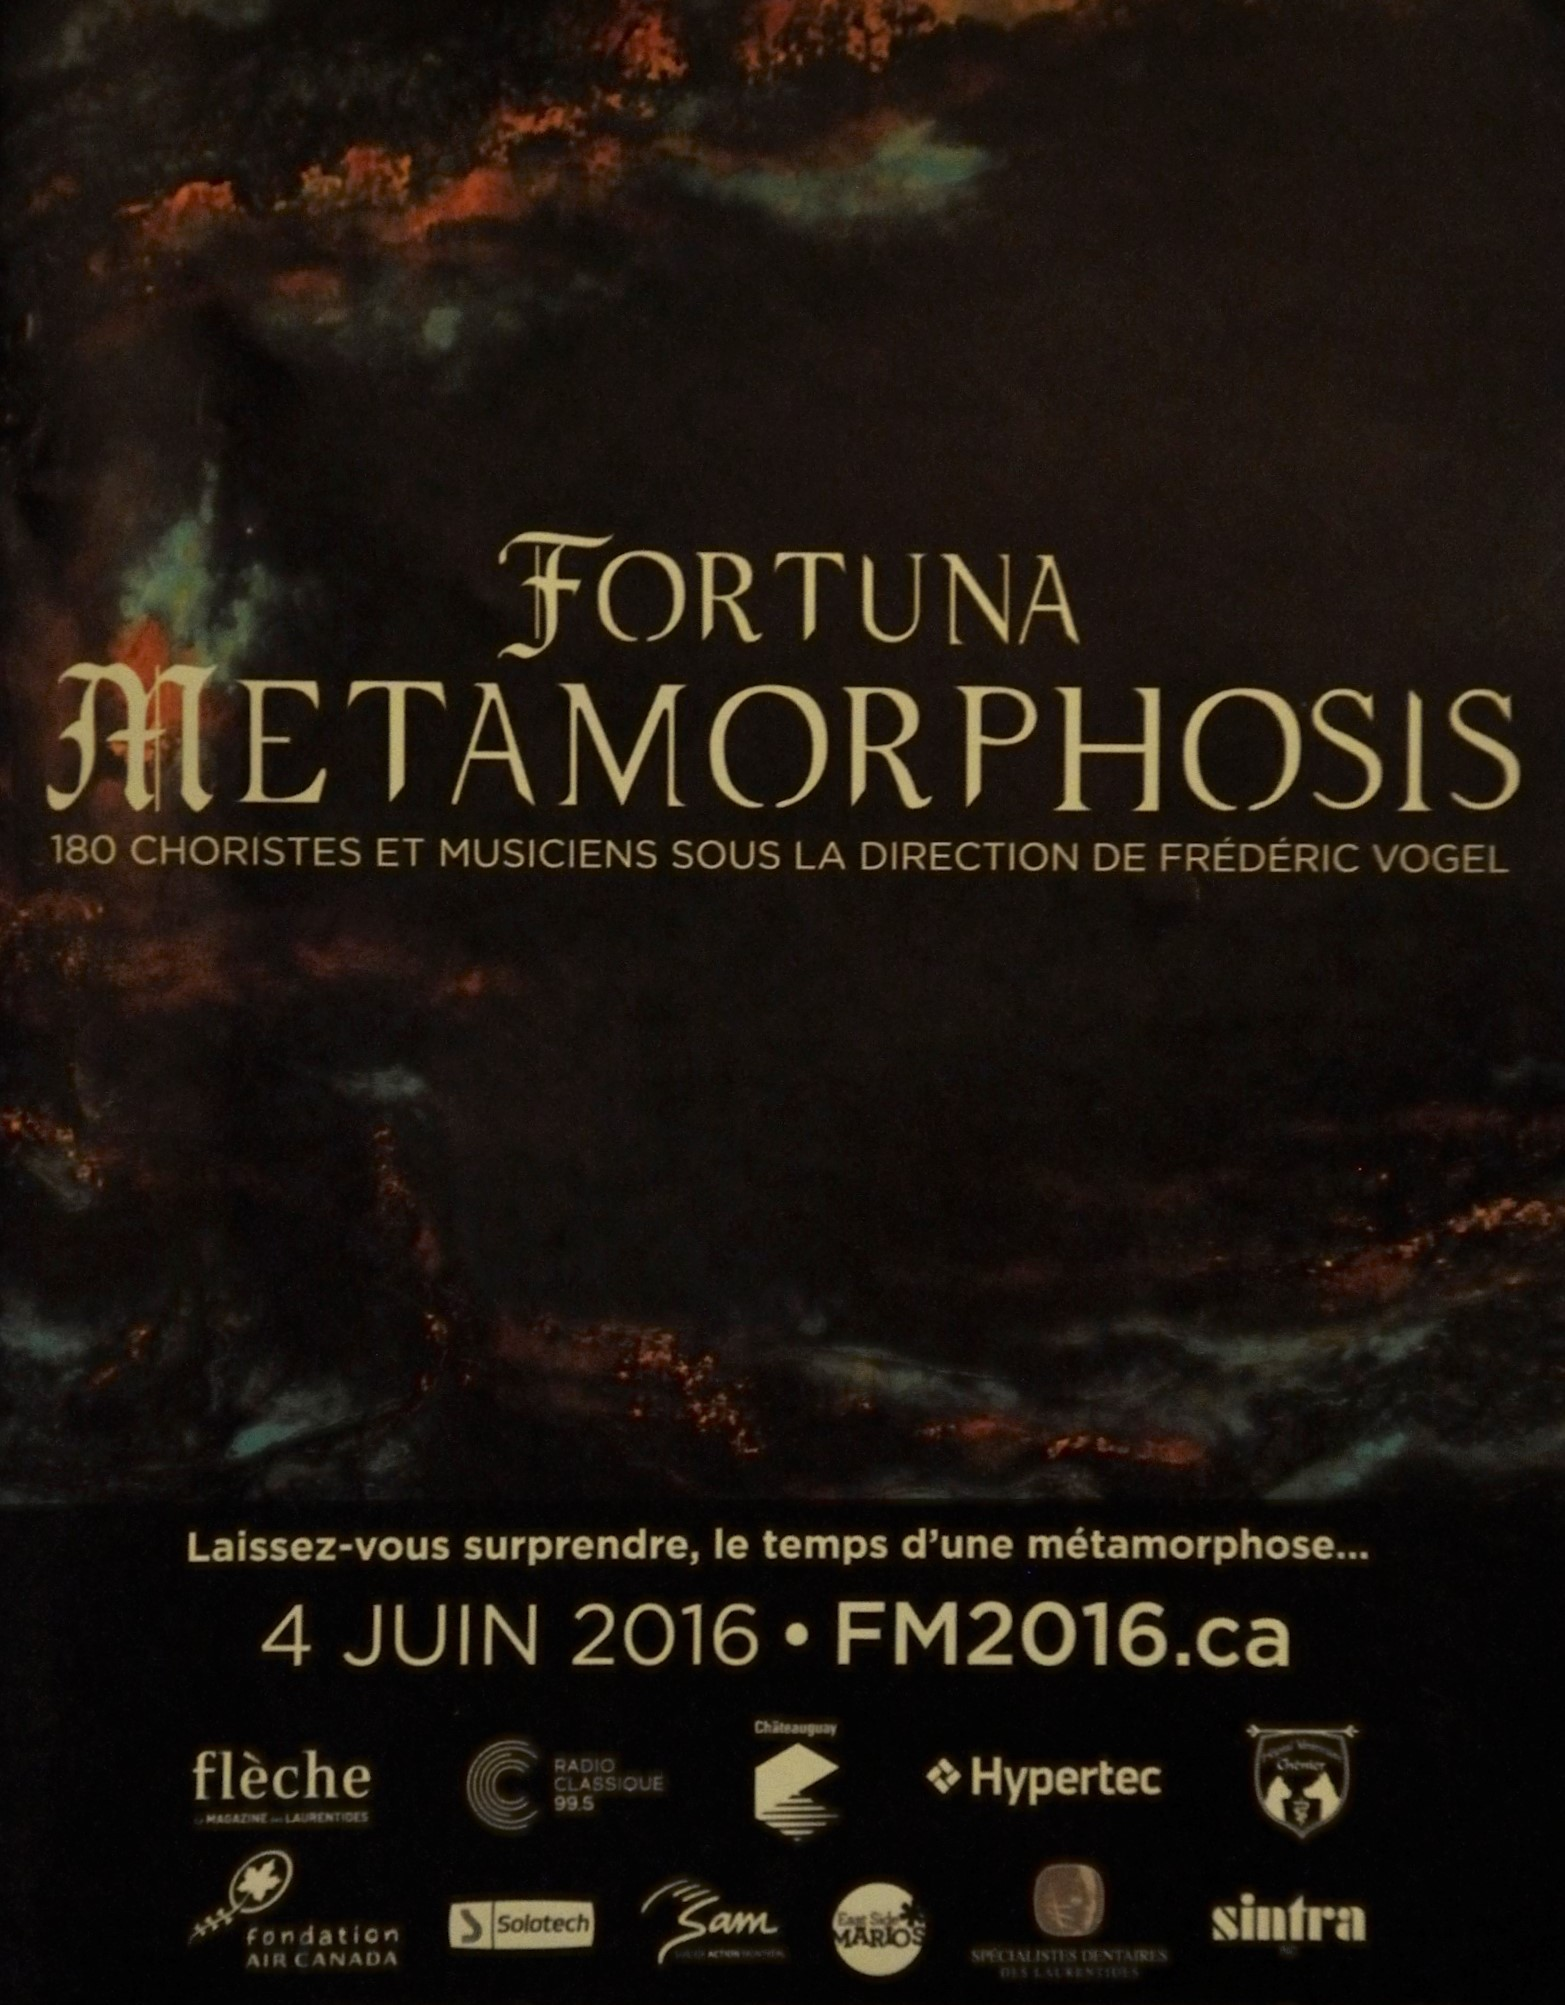 2016-4 juin Fortuna Metamorphosis